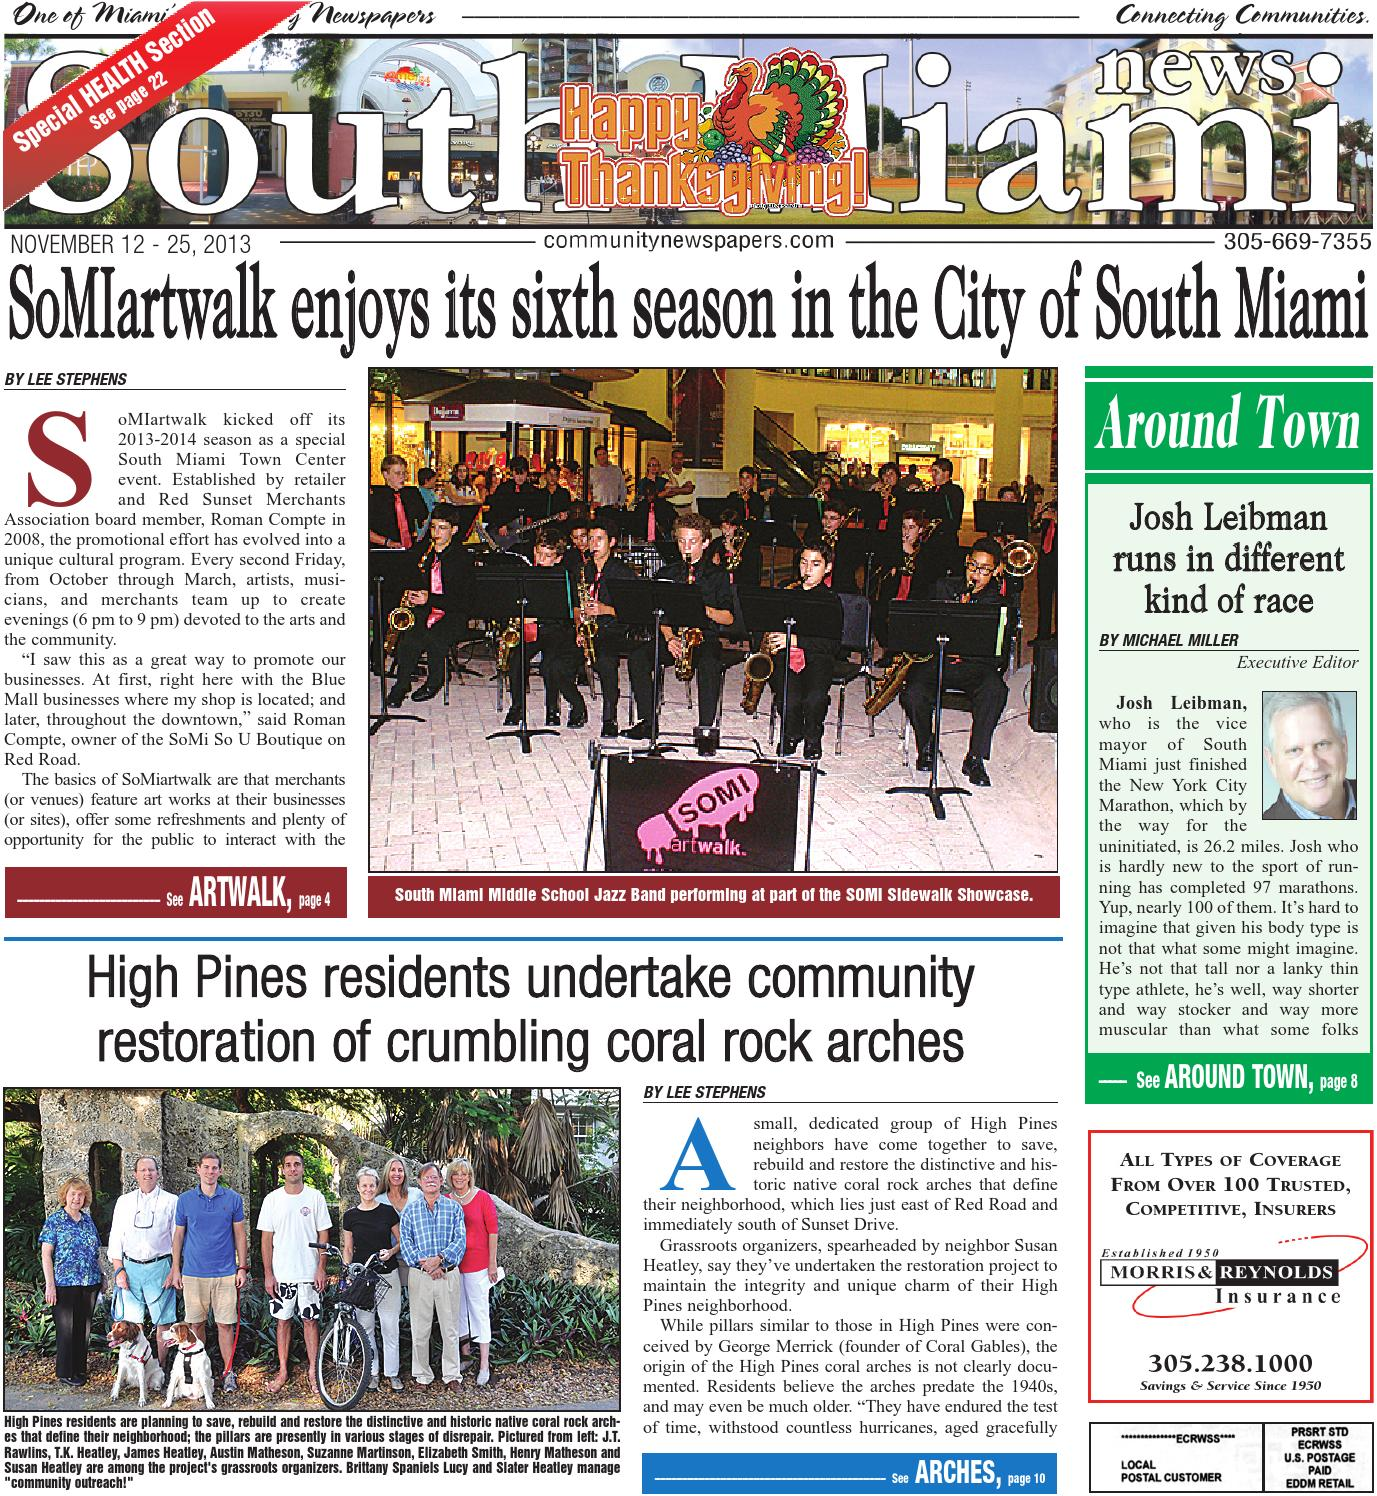 South Miami News 11 12 2013 by Community Newspapers - issuu